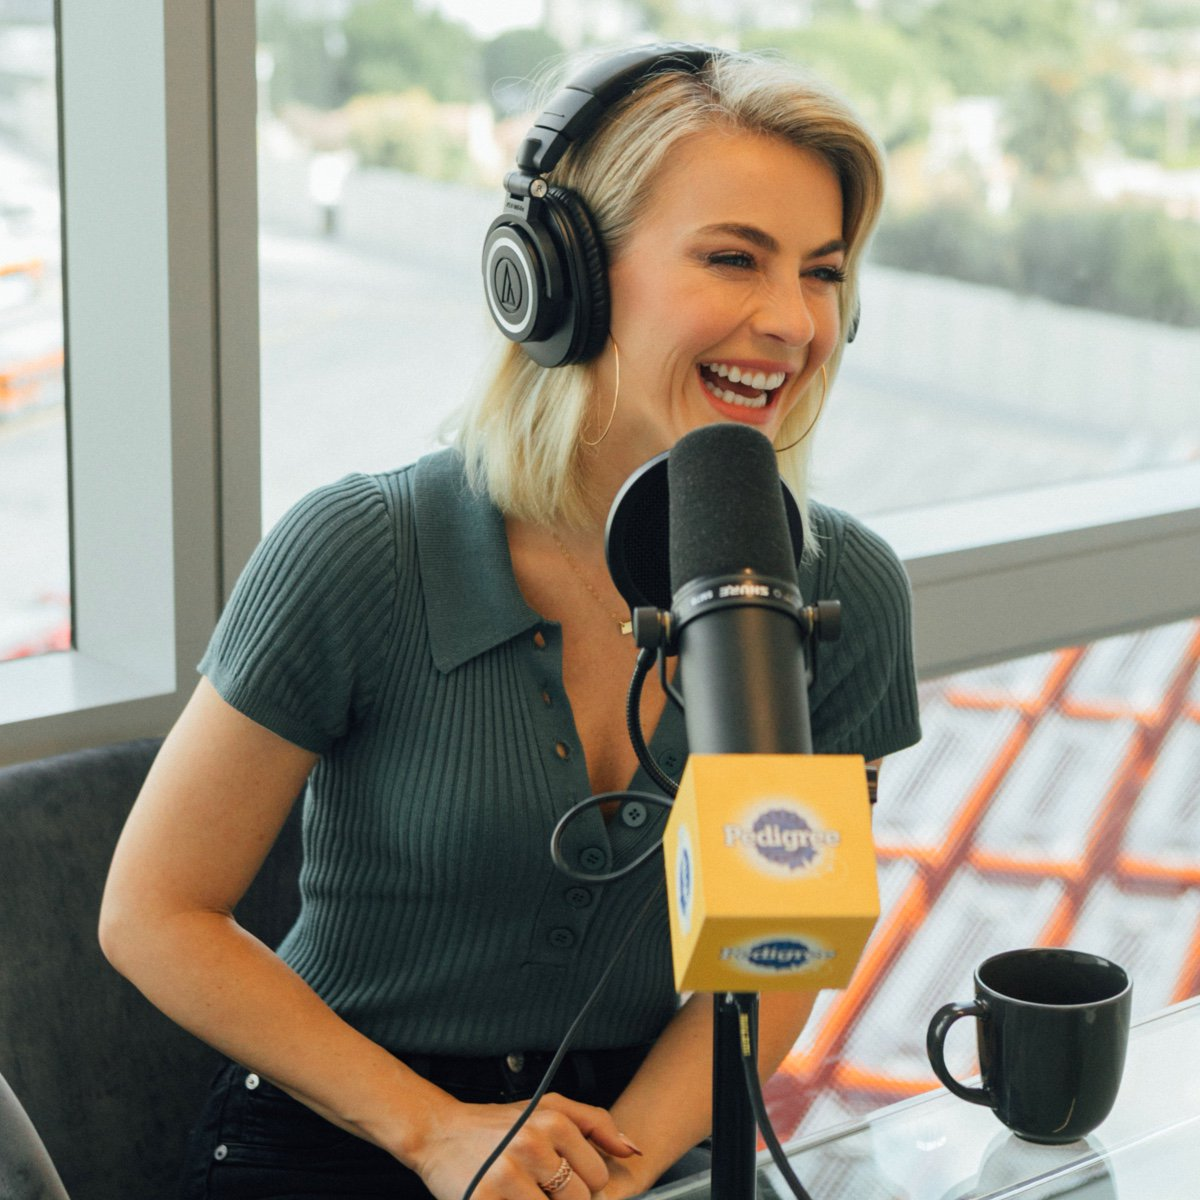 """""""You have to meet Lexi. We call her OG - Original Grandma."""" Hear Julianne Hough describe the one-of-a-kind personalities of her rescue dogs on the new podcast """"The Dog That Changed Me."""" #EveryPupsSuperpower #PEDIGREE https://t.co/6K53sop2pH https://t.co/ob5rdbJuFO"""